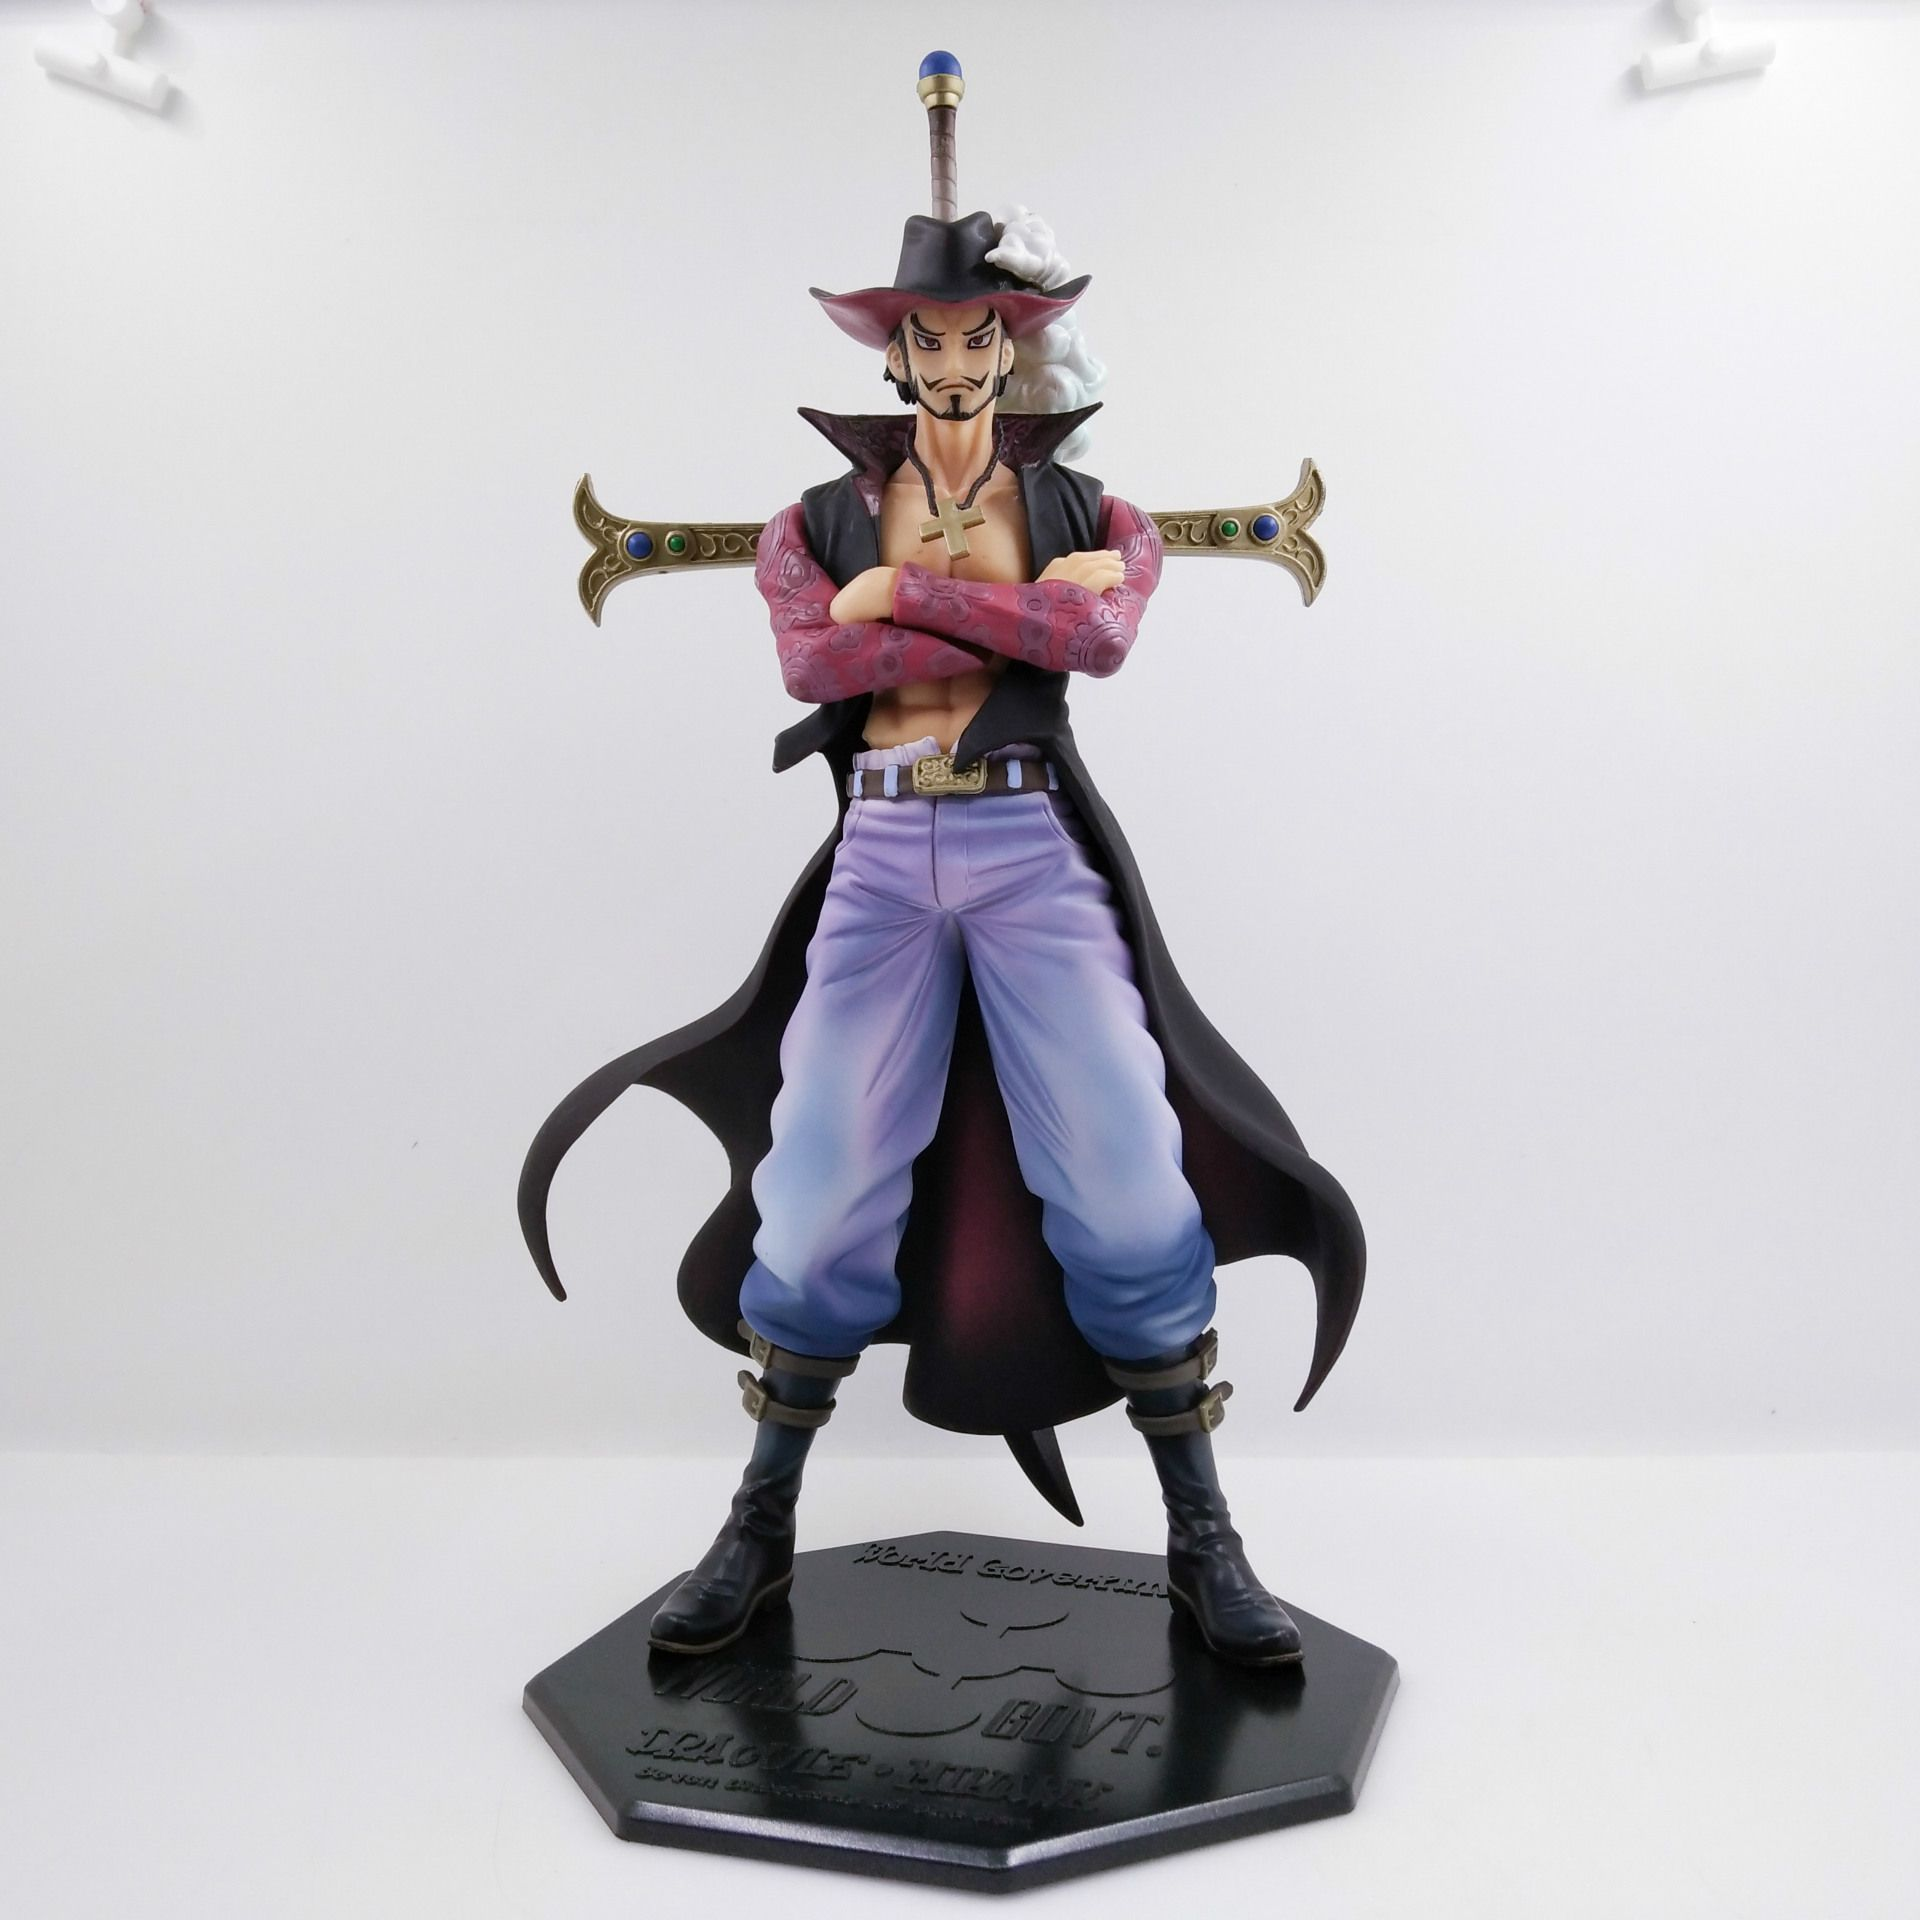 22CM pvc Japanese anime figure ONE PIECE Dracule Mihawk standing version action figure collectible model toys for boy one piece figure japanese one piece nico robin pvc 17cm action figures kids toys japanese anime figurine doll free shipping